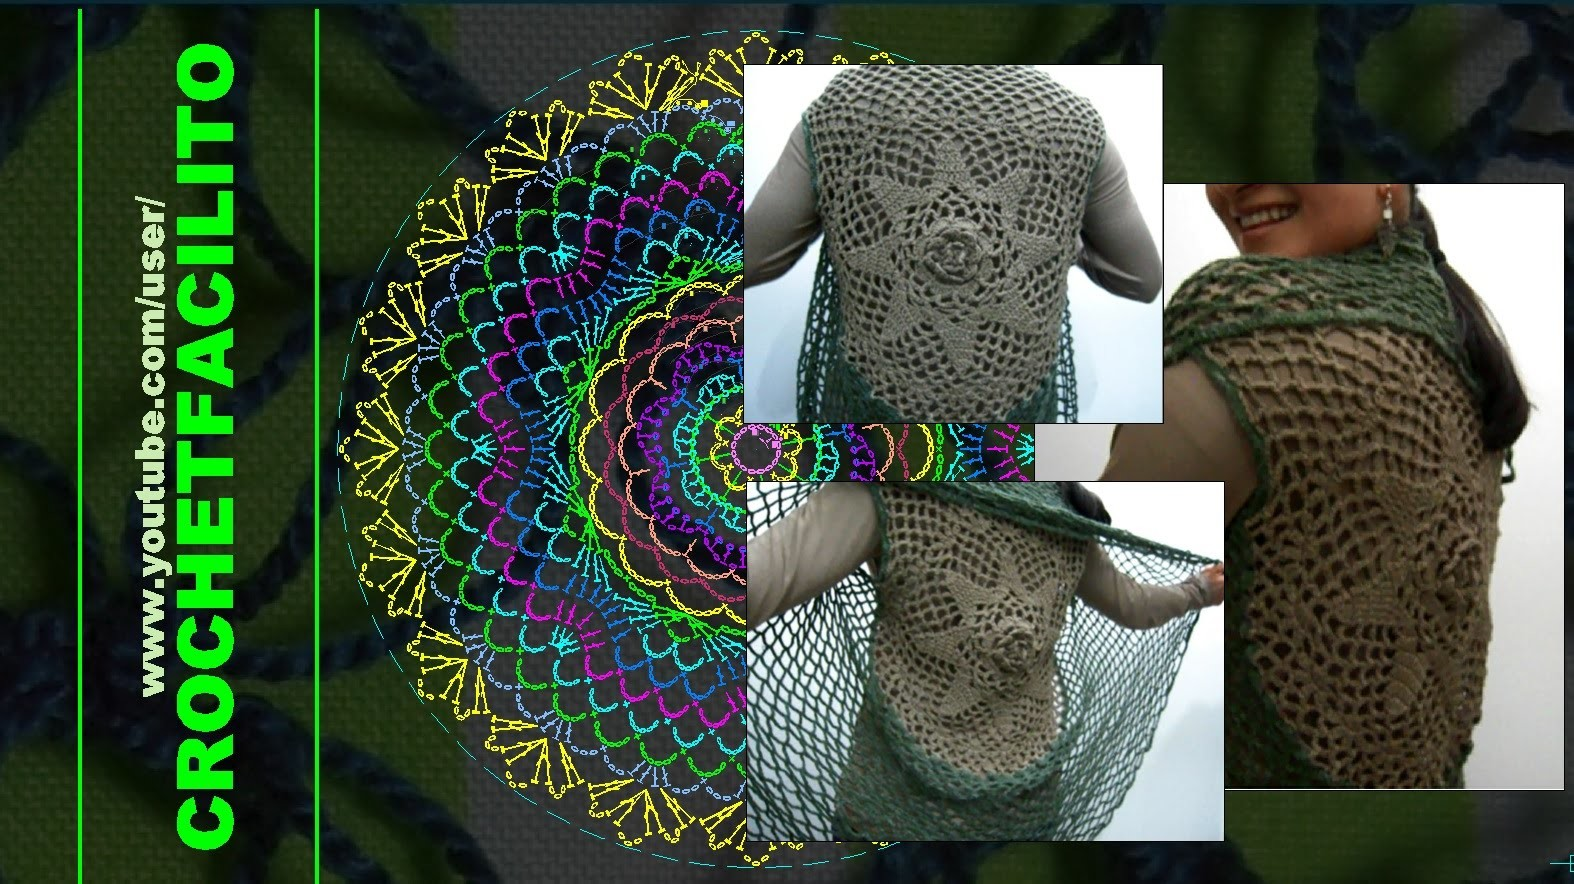 CROCHET - 11. UNA FLOR GIGANTE EN TU ESPALDA. A BIG FLOWER ON YOUR BACK !!